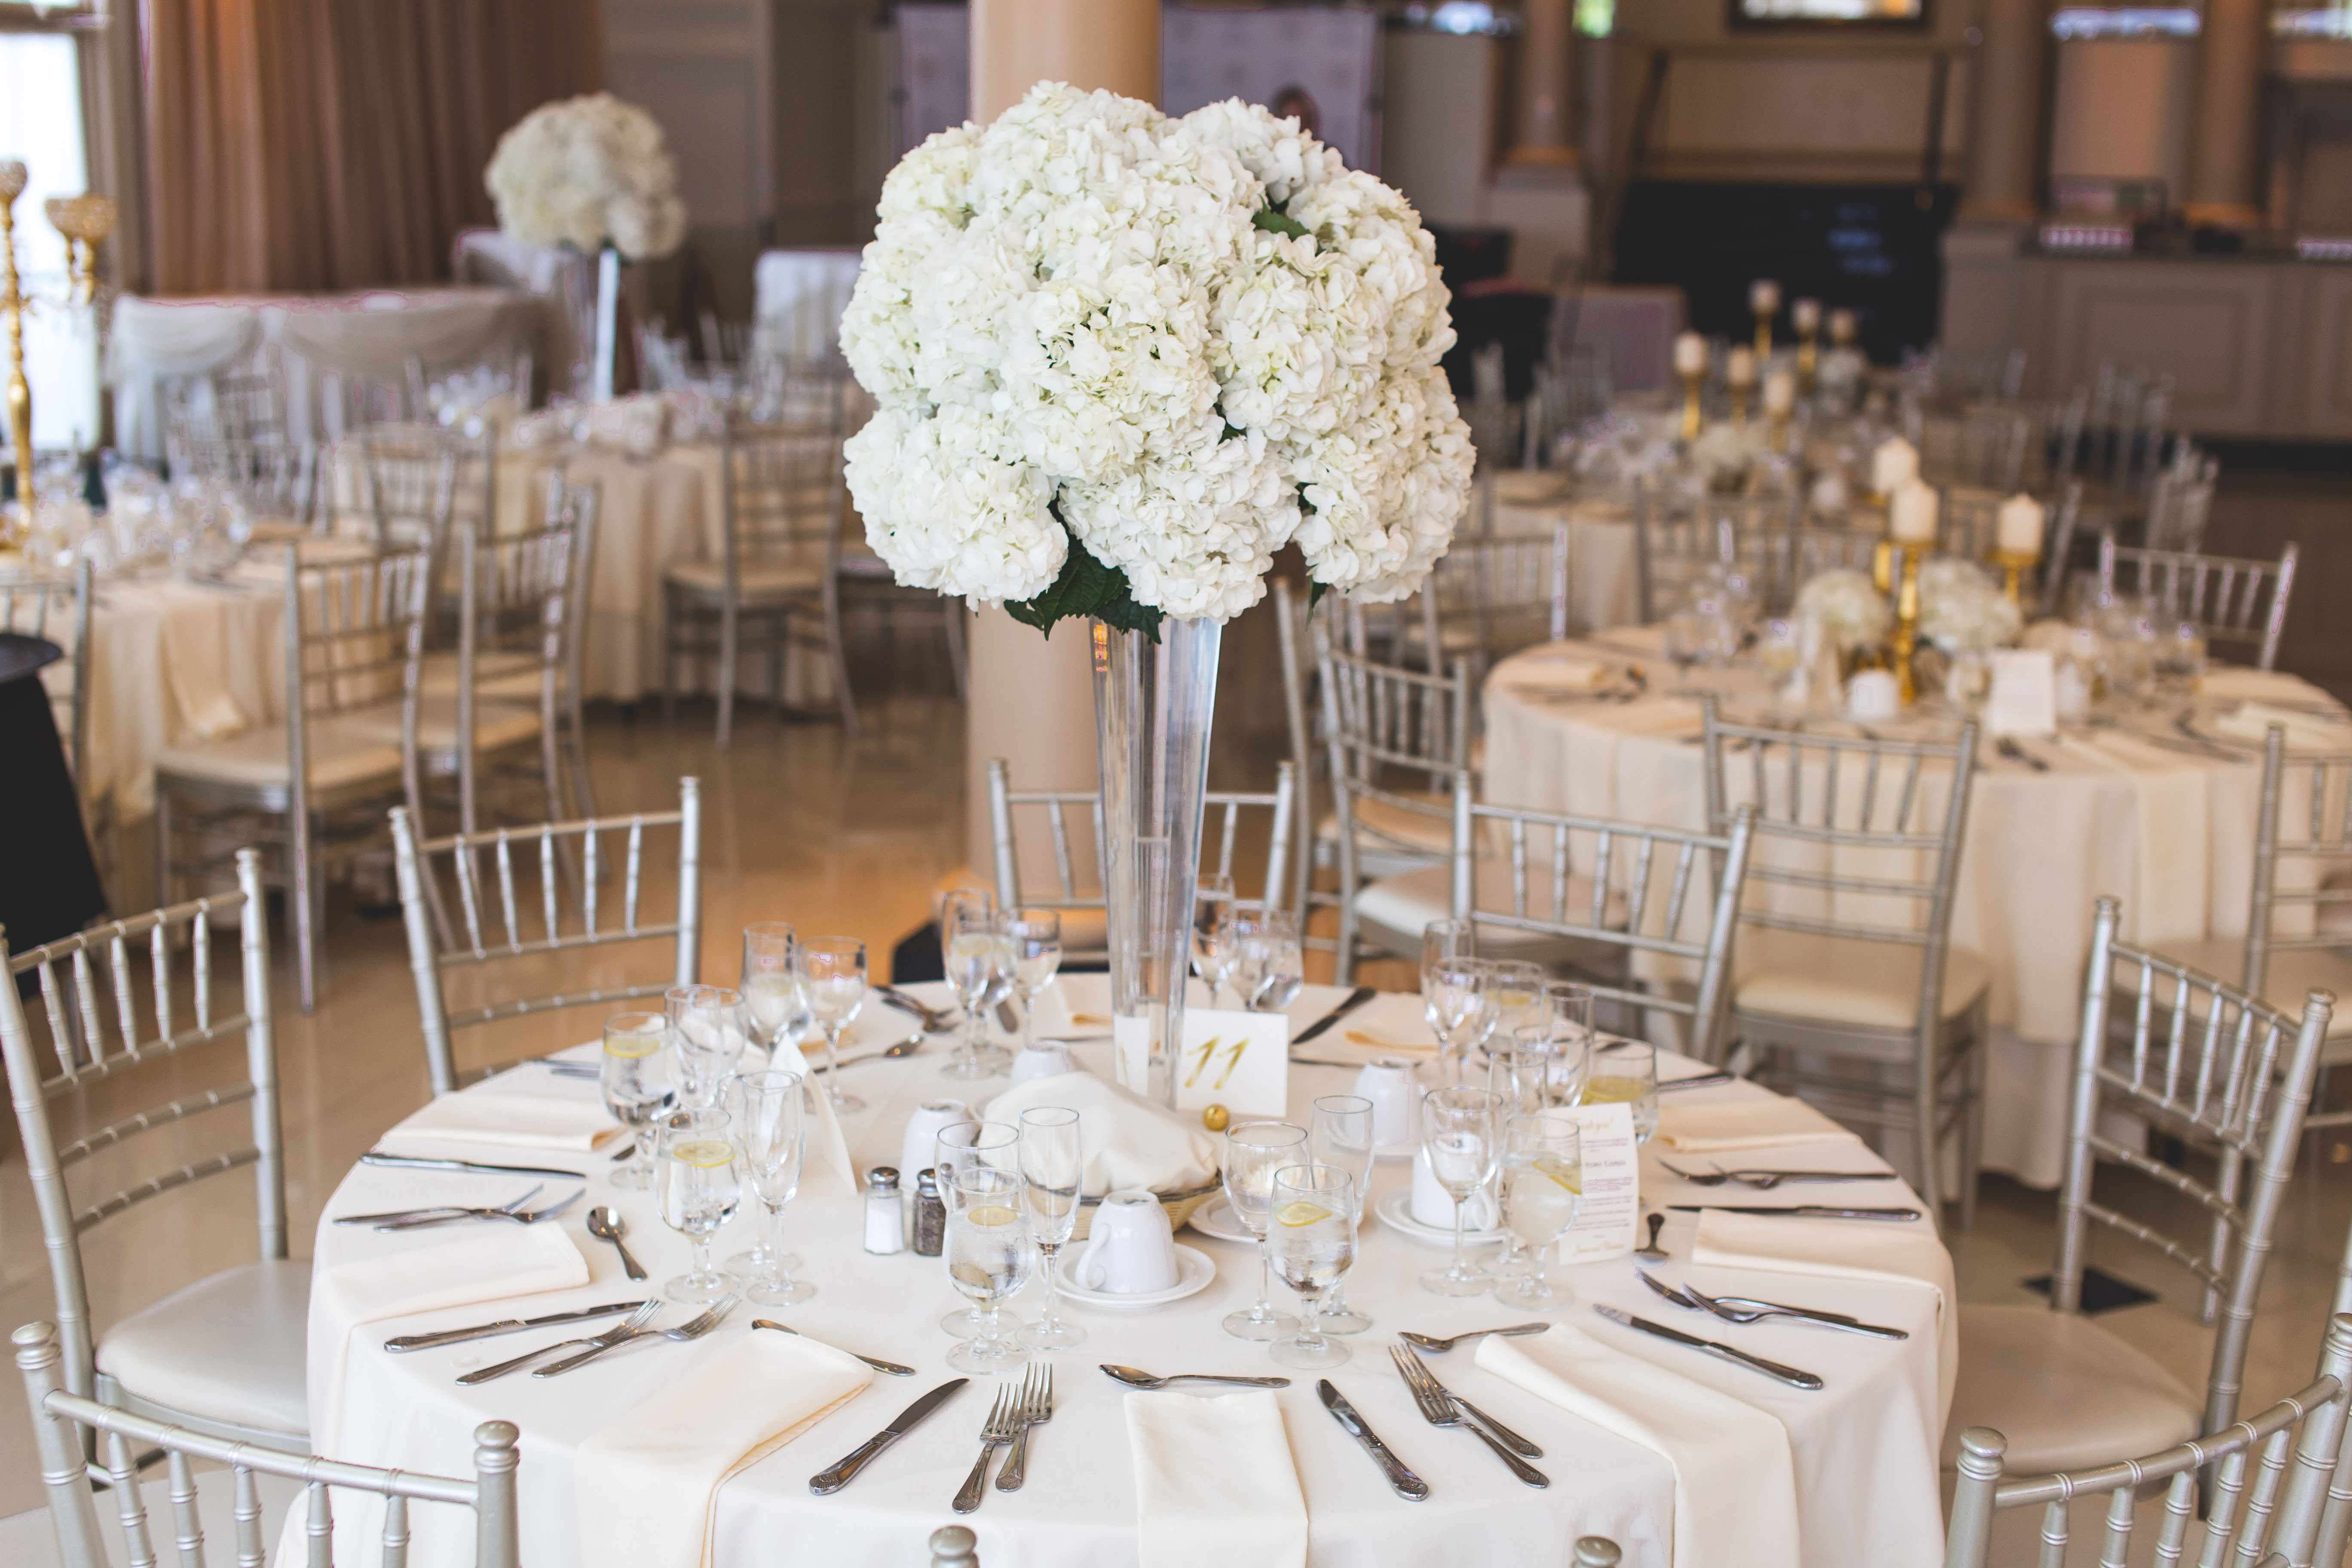 How to Start Preparing for a Large Event